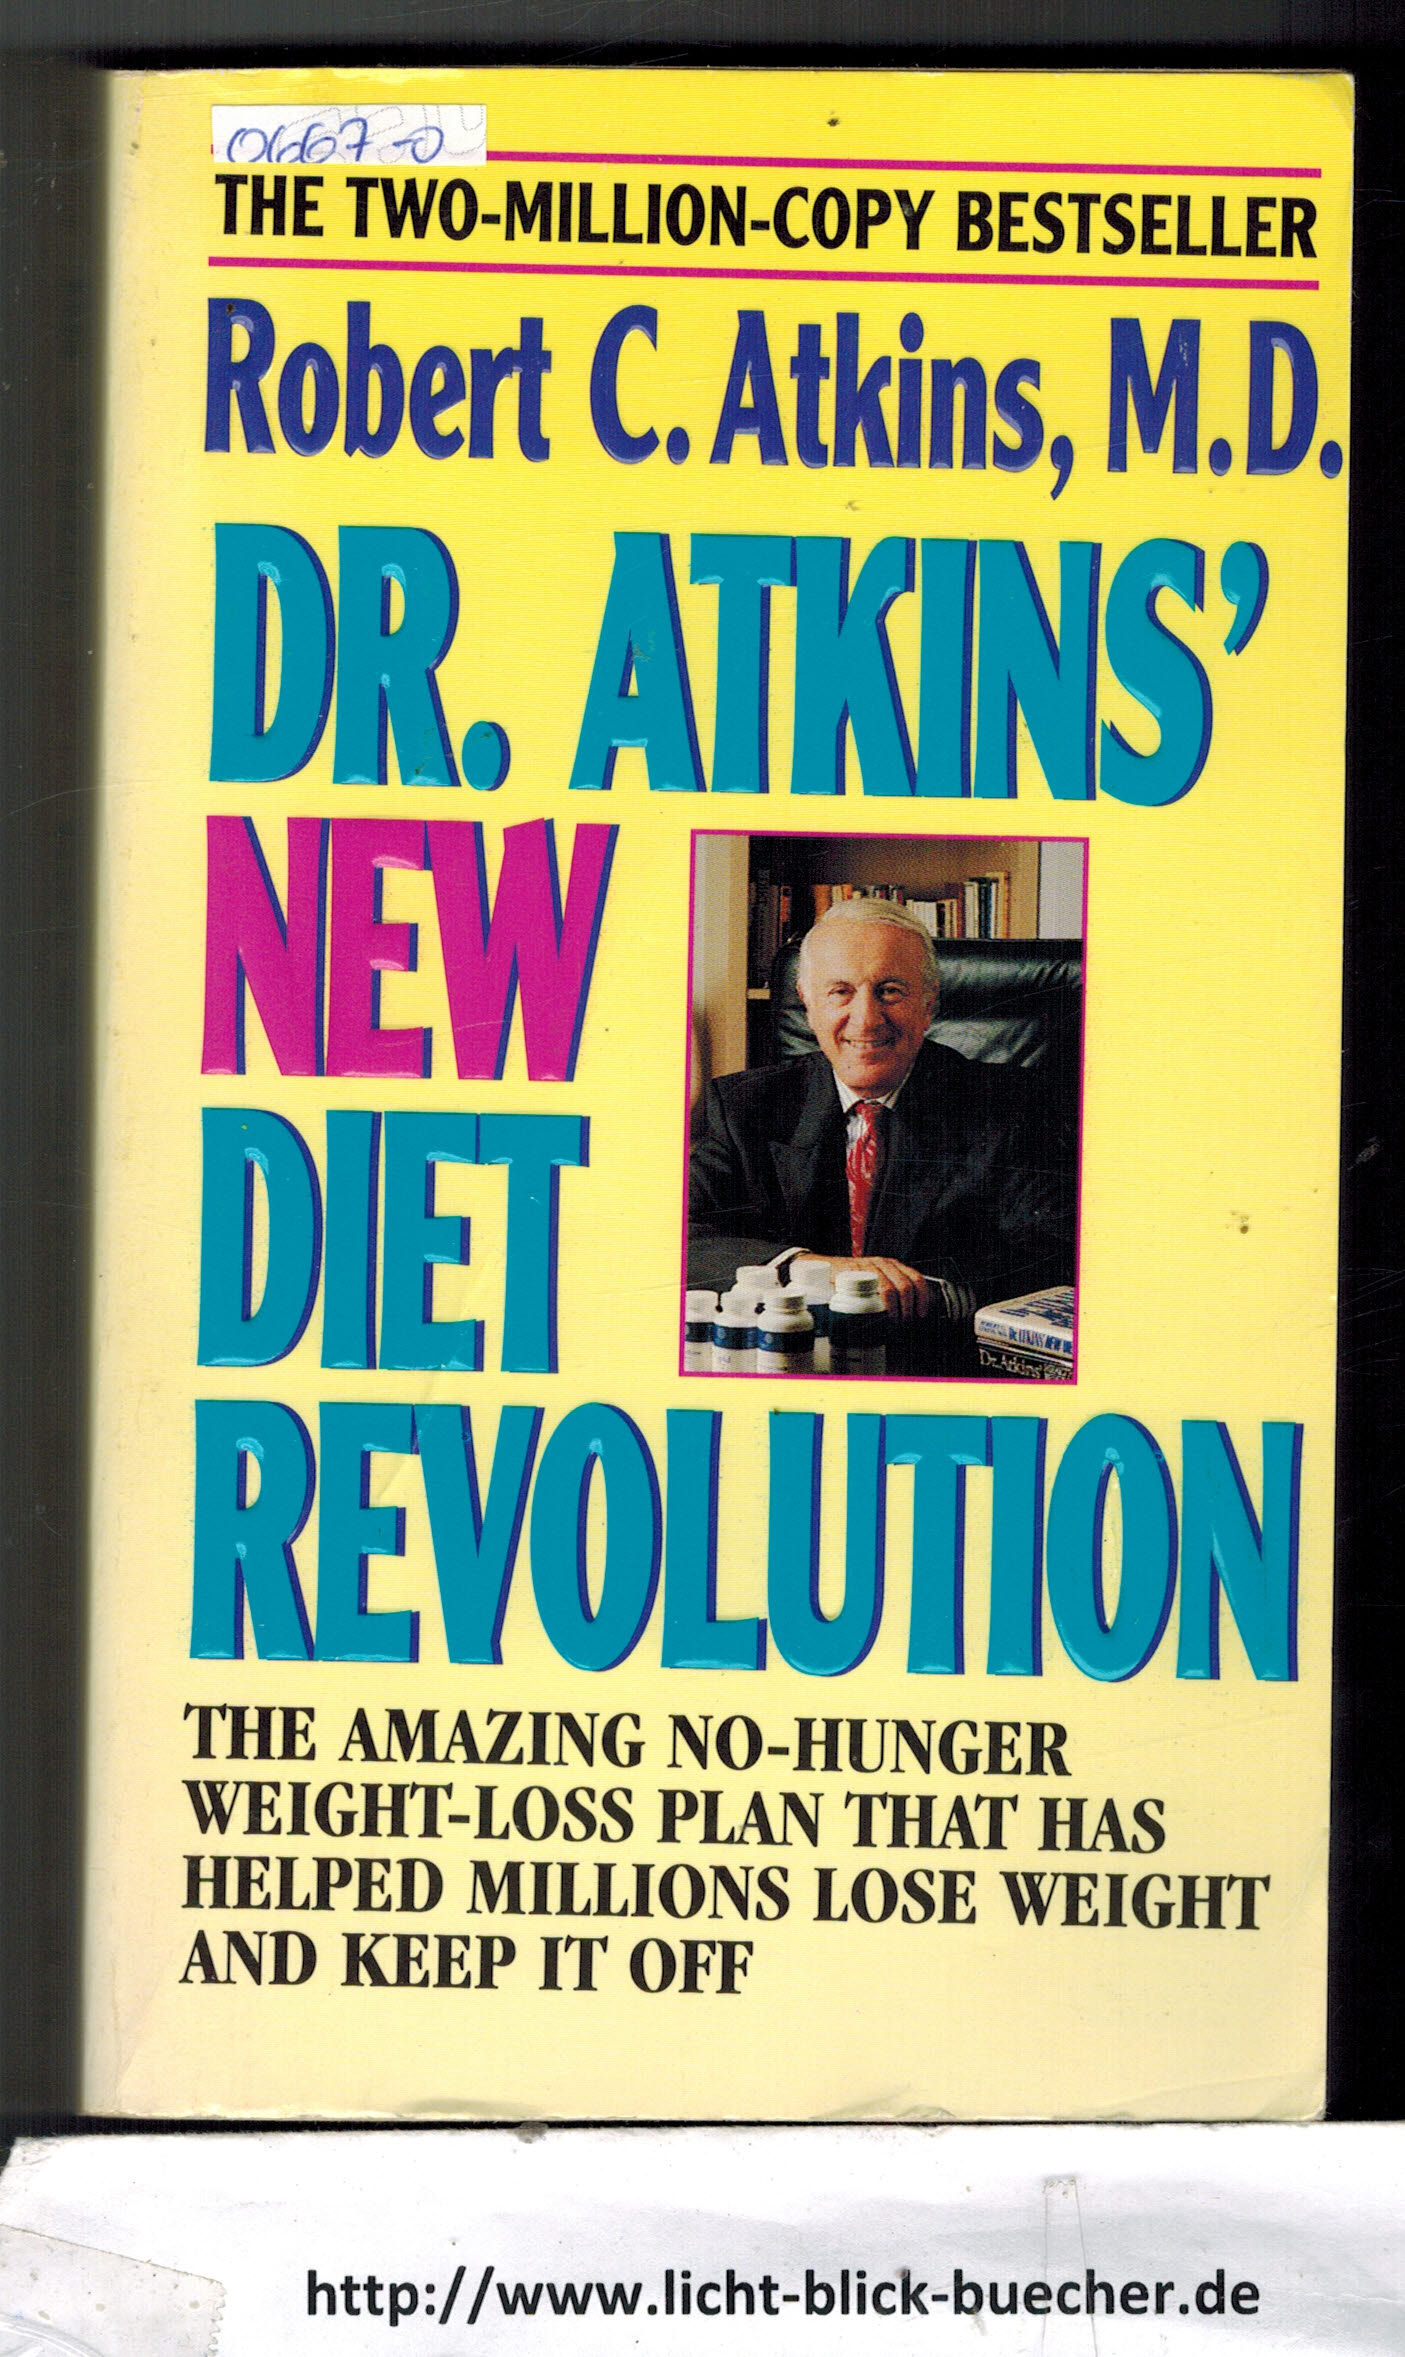 Dr, ATKINS New Diet Revolution